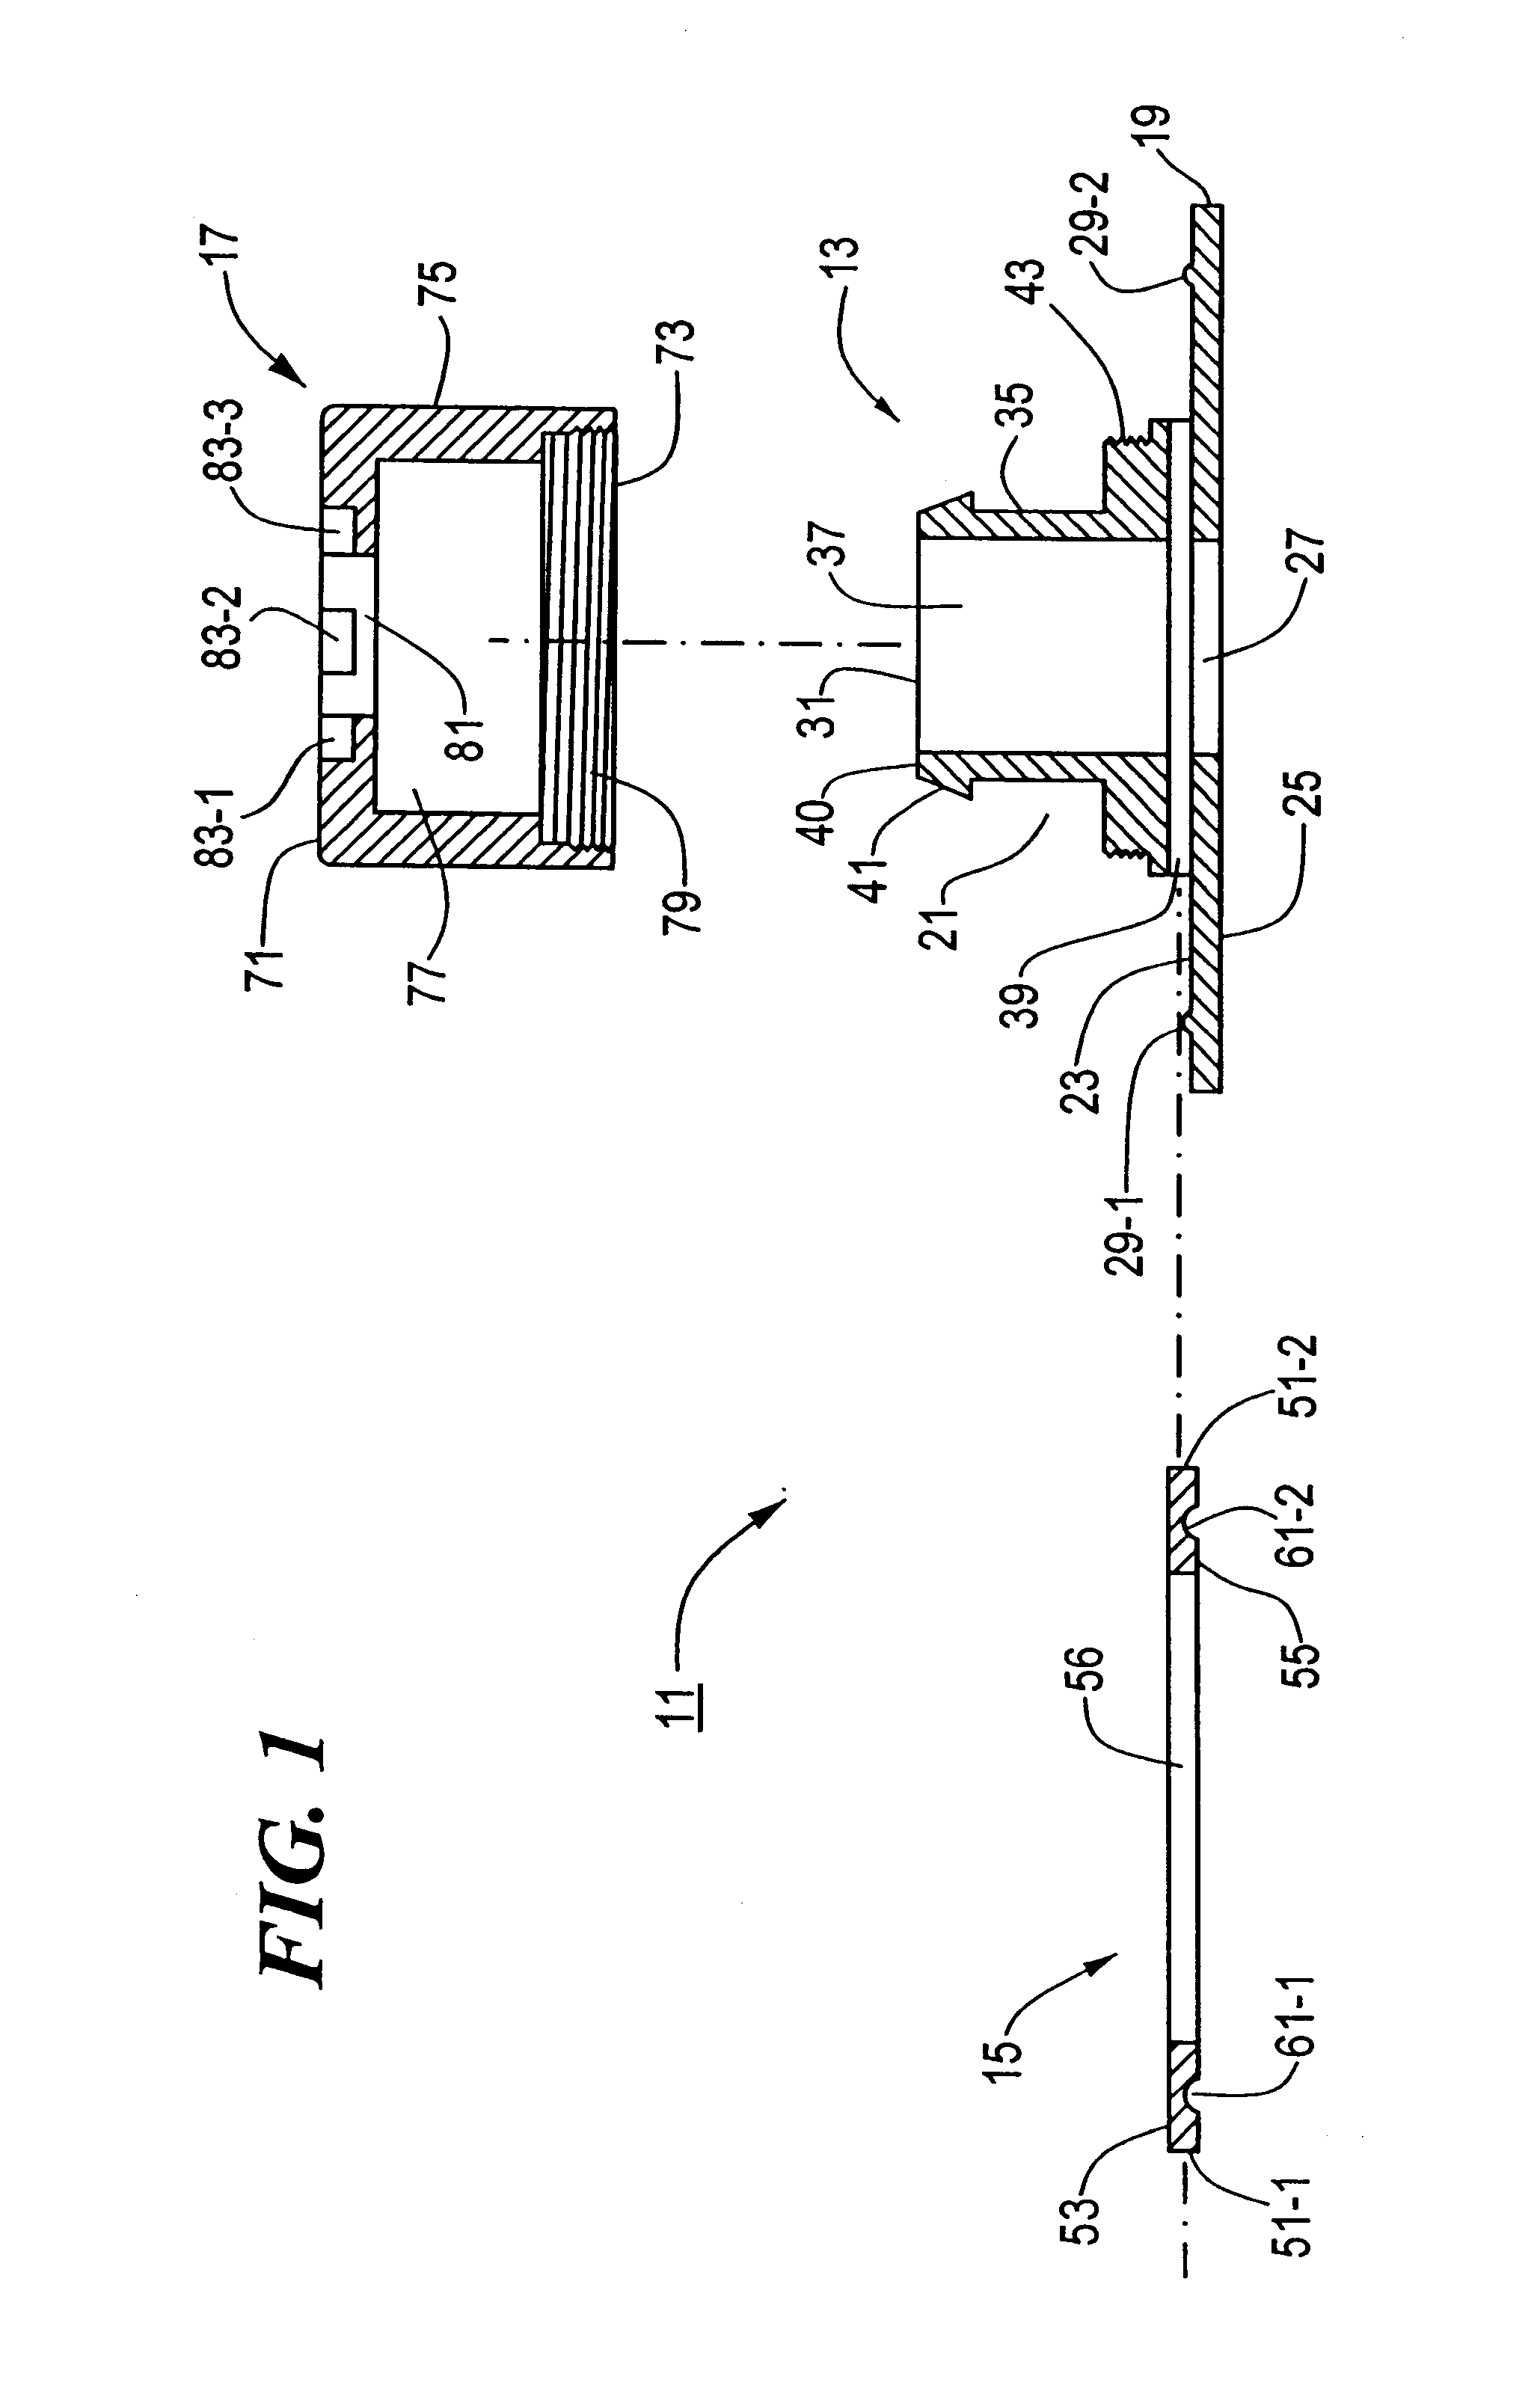 Image:Patent_2.png